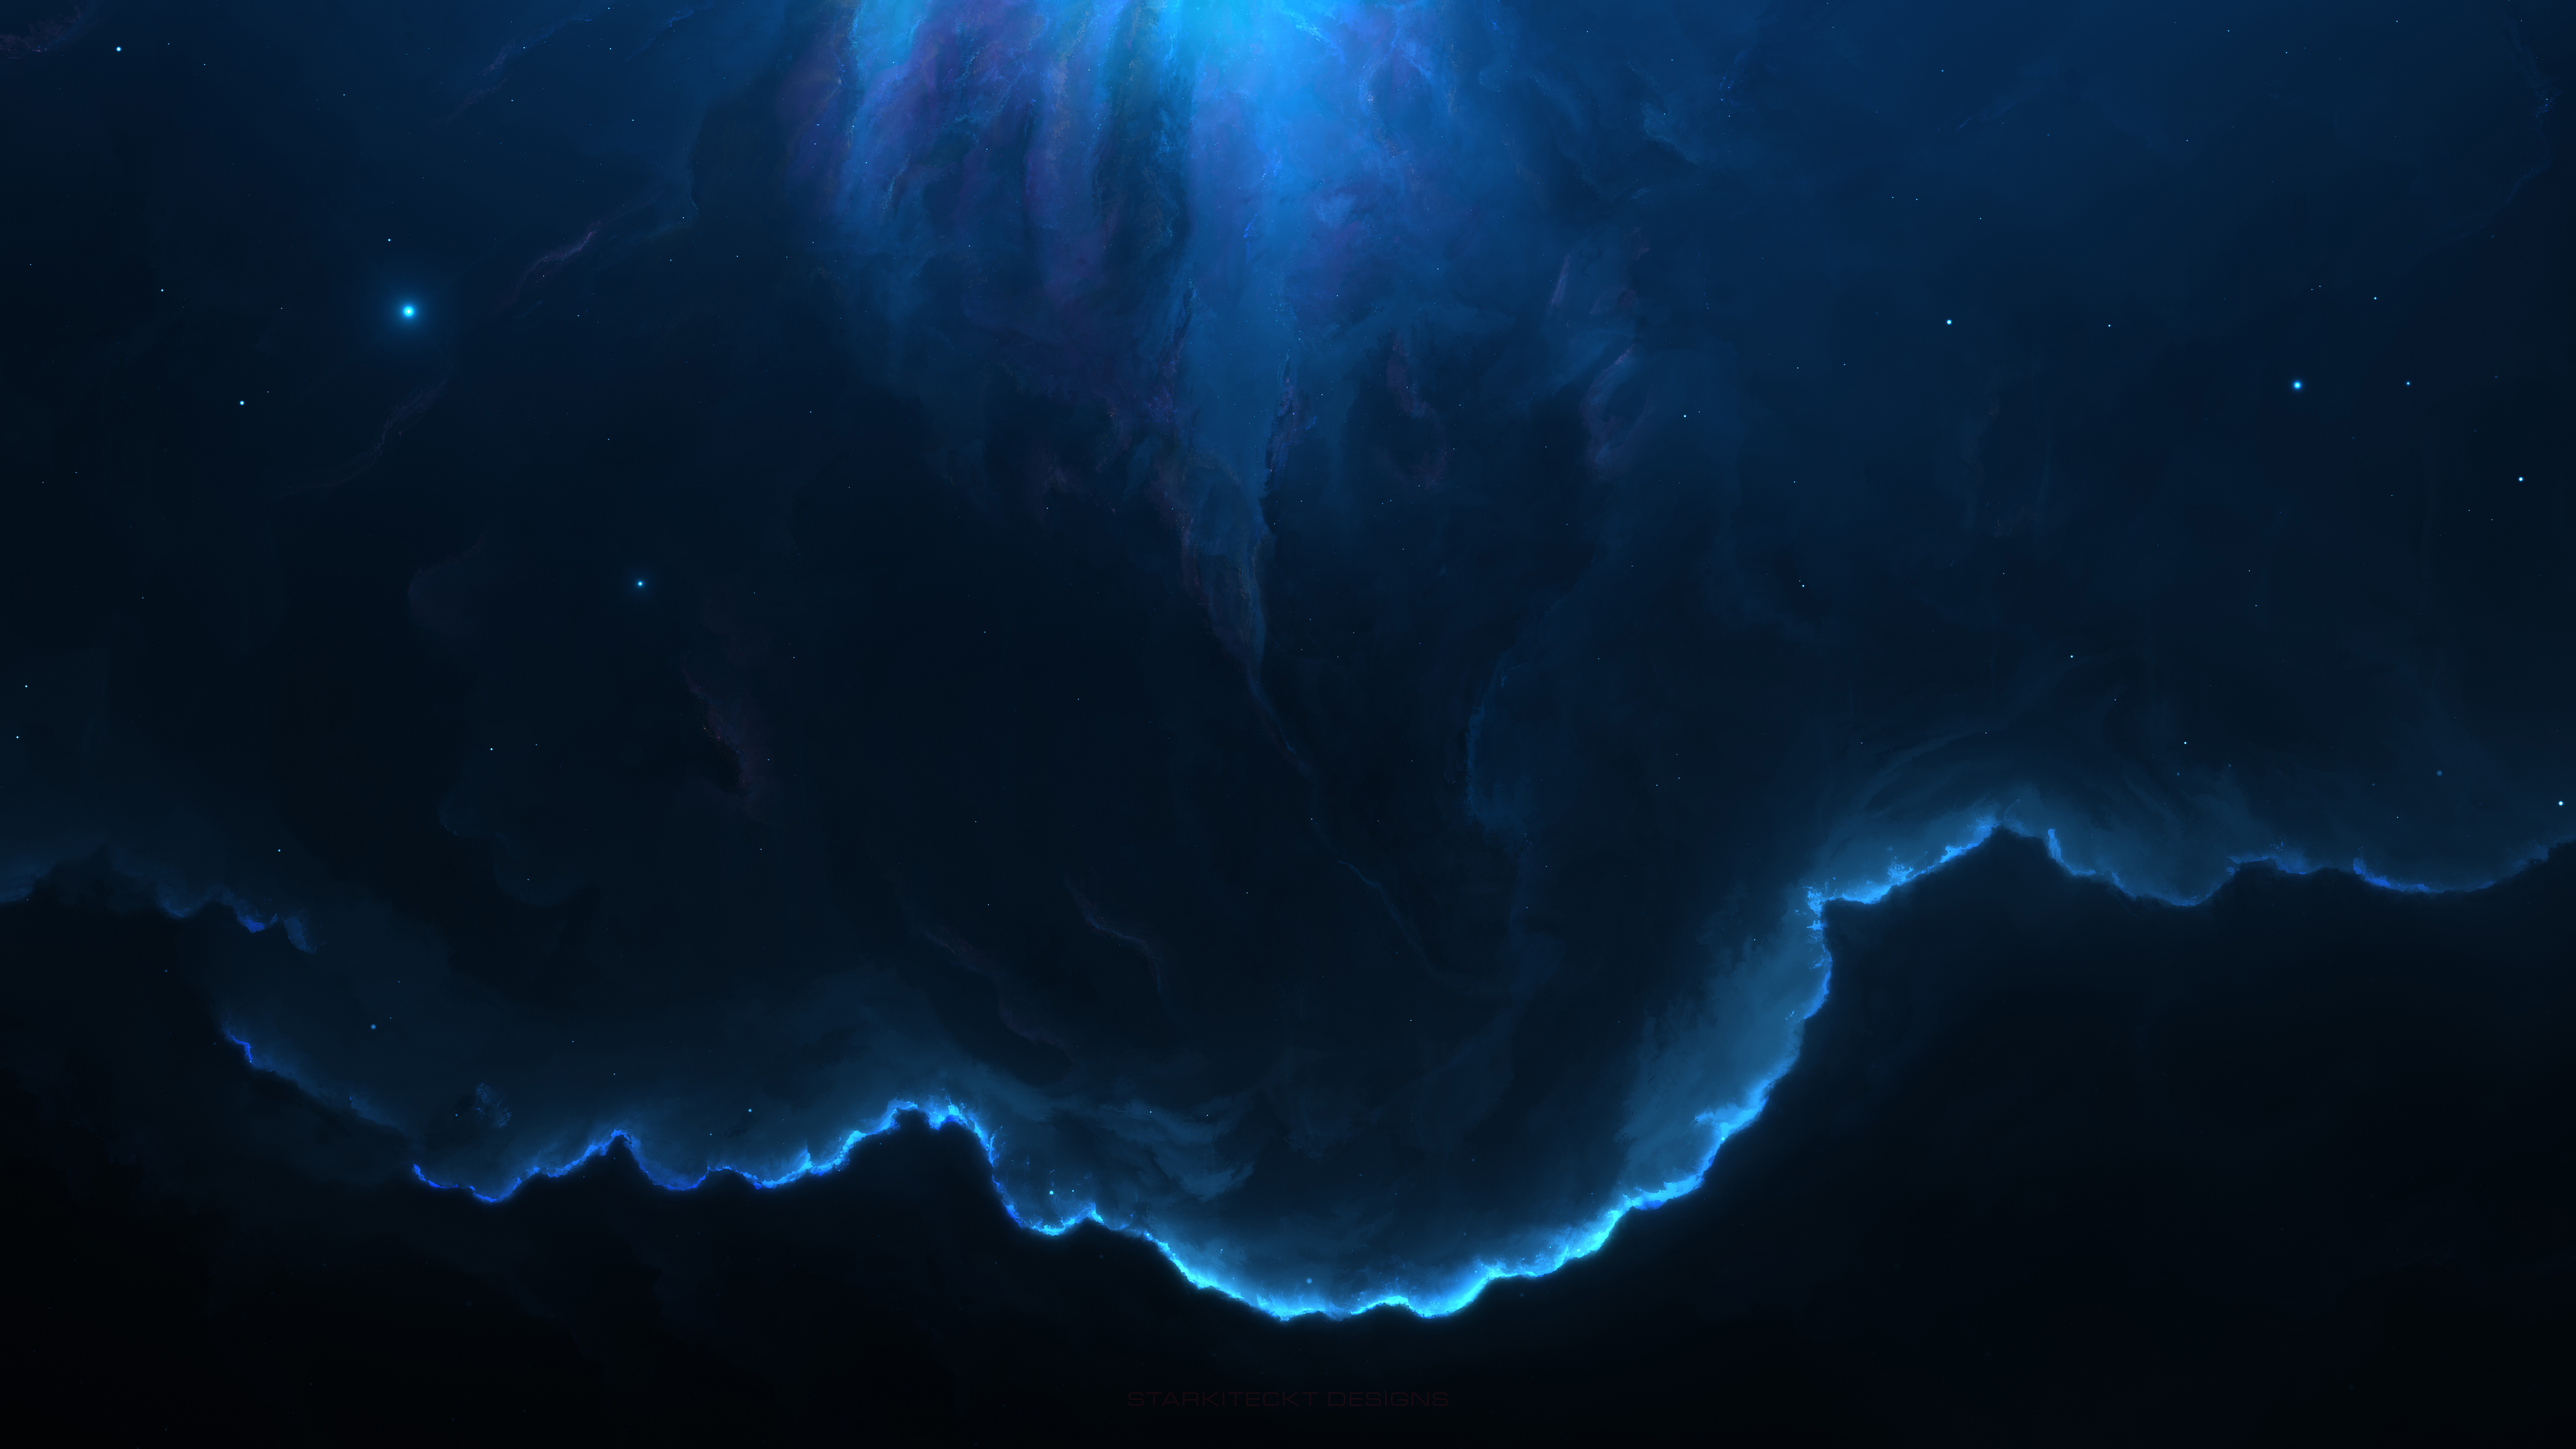 7680x4320 Nebula Space Blue 12k 8k HD 4k Wallpapers